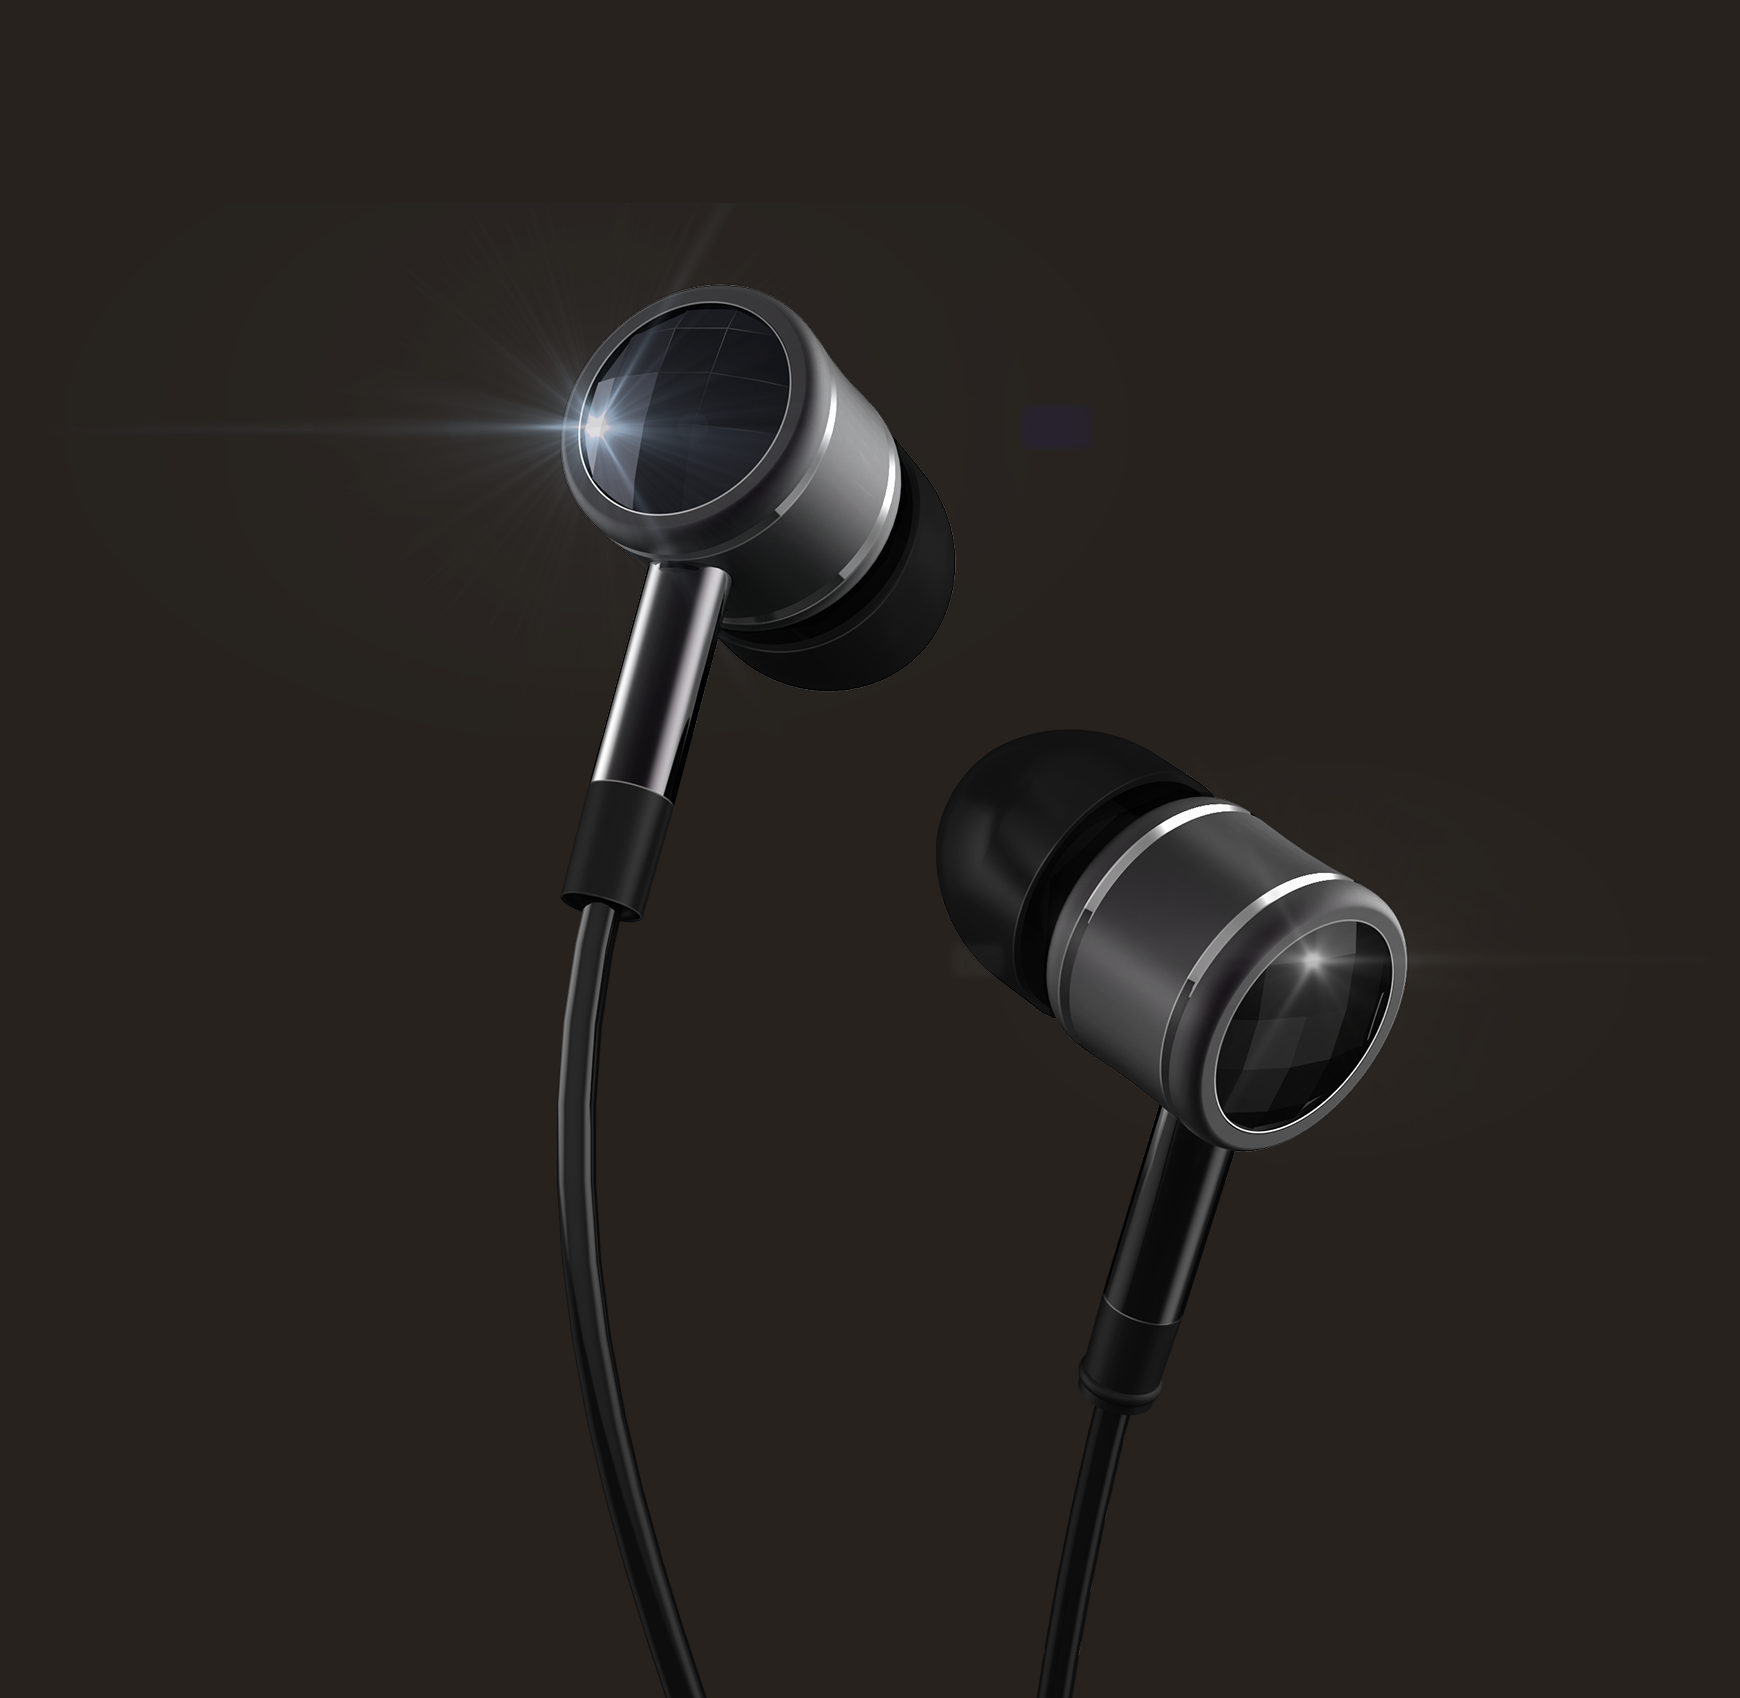 Serious Listening A Review Of 1more Usa Headphones Elmore Magazine Earphone In Ear Piston Fit Model Eo301 Crystal